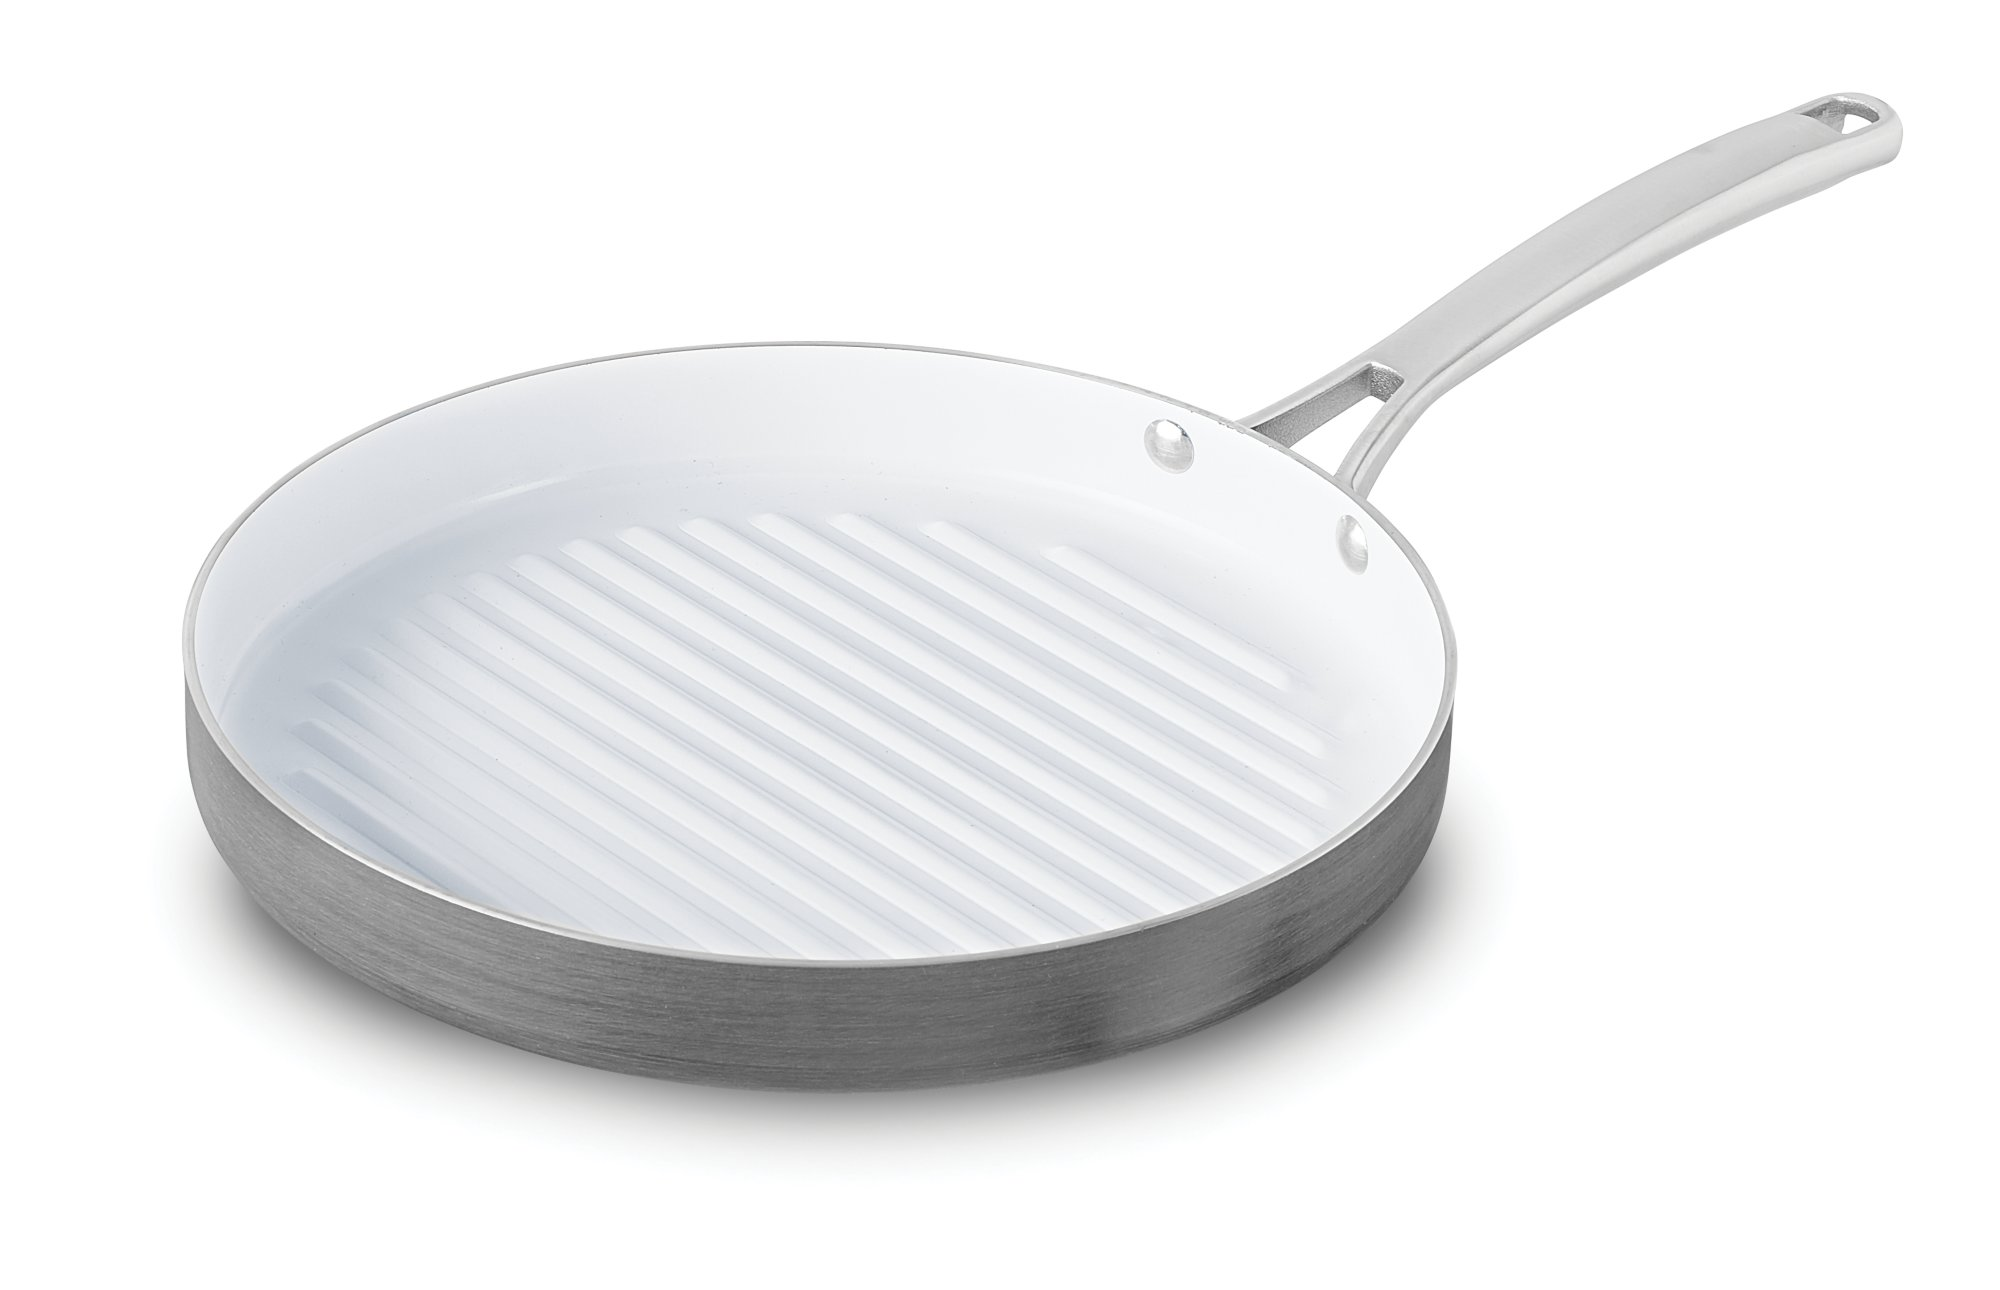 Calphalon Classic™ Ceramic Nonstick 12-in. Round Grill Pan